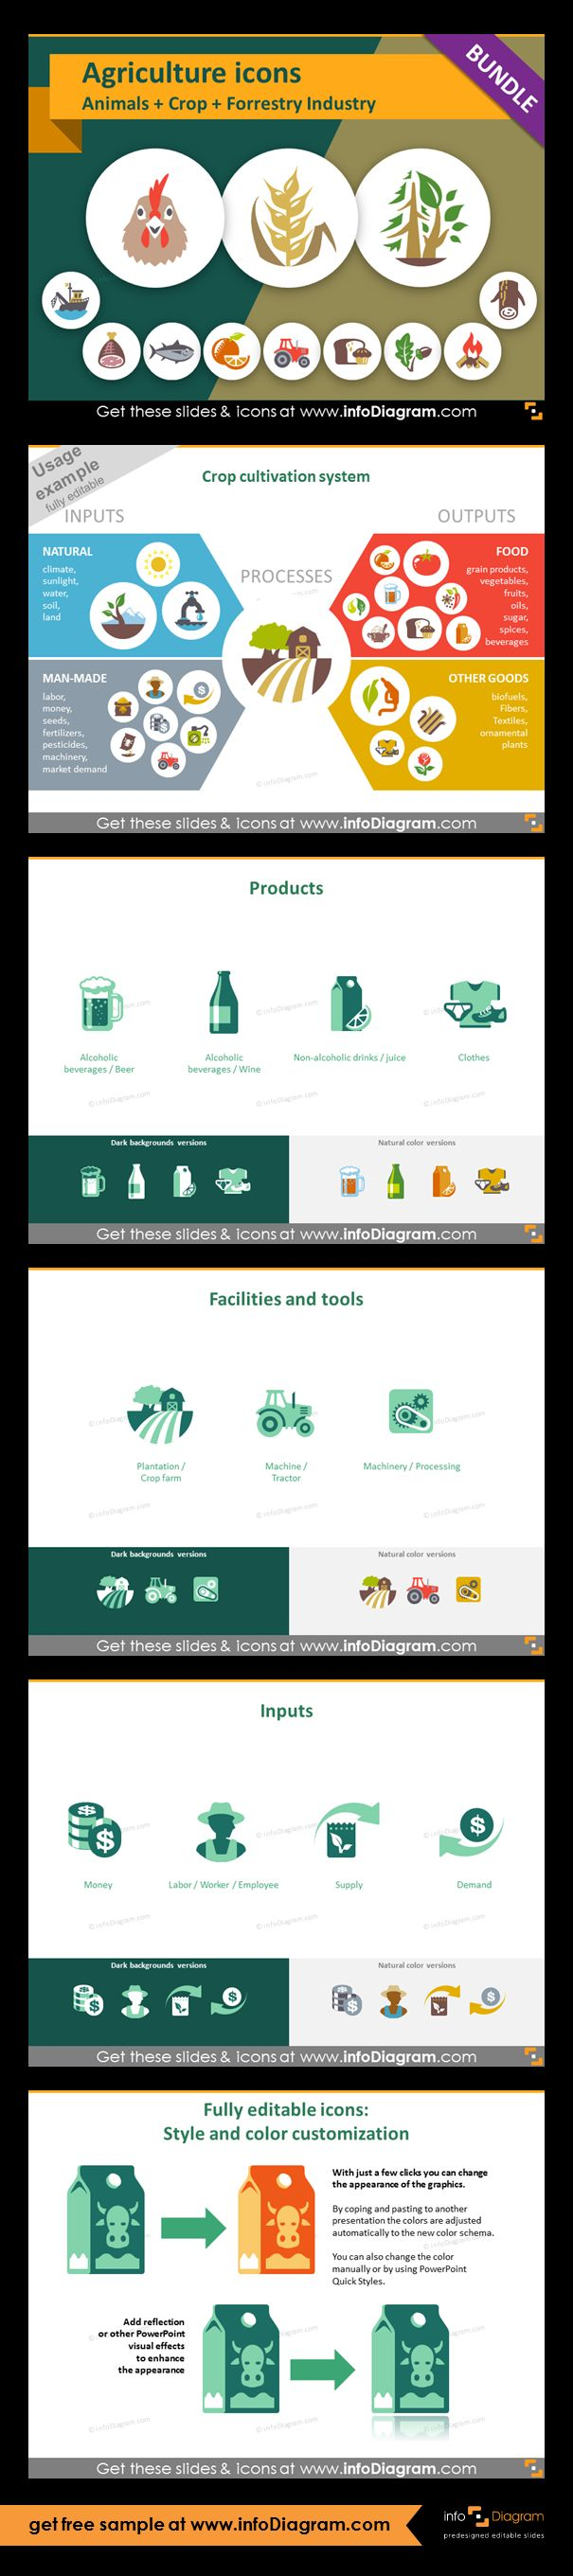 Food and Agriculture icons: Animals, Crop Cultivation, Forestry. All symbols in simple flat style, suitable for Metro UI style graphics. Icons provided in 5 versions. Graphic presenting crop cultivation process with icons of inputs and outputs. Product icons of crop agriculture:  beer, wine, juice, clothes. Facilities and tools of fruit, vegetables crop agriculture: plantation, tractor, machinery. Agriculture inputs: money, worker, supply, demand. Example of icons editing.